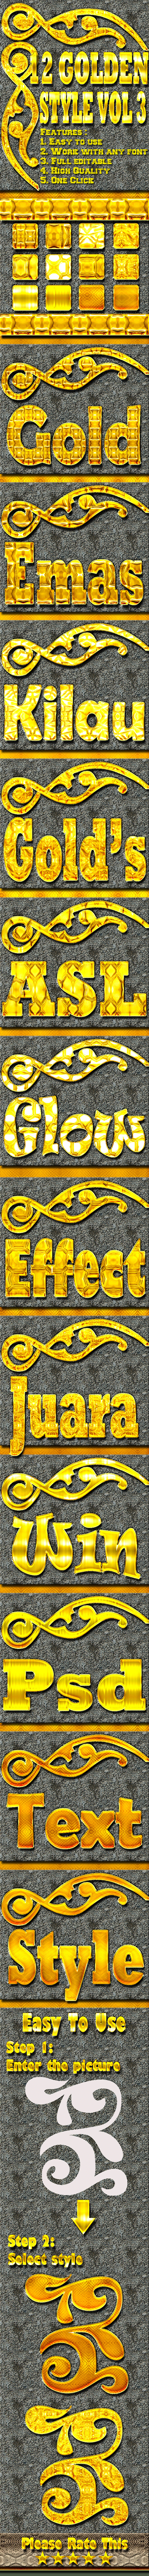 12 Golden Text Effect Style Vol 3 - Styles Photoshop